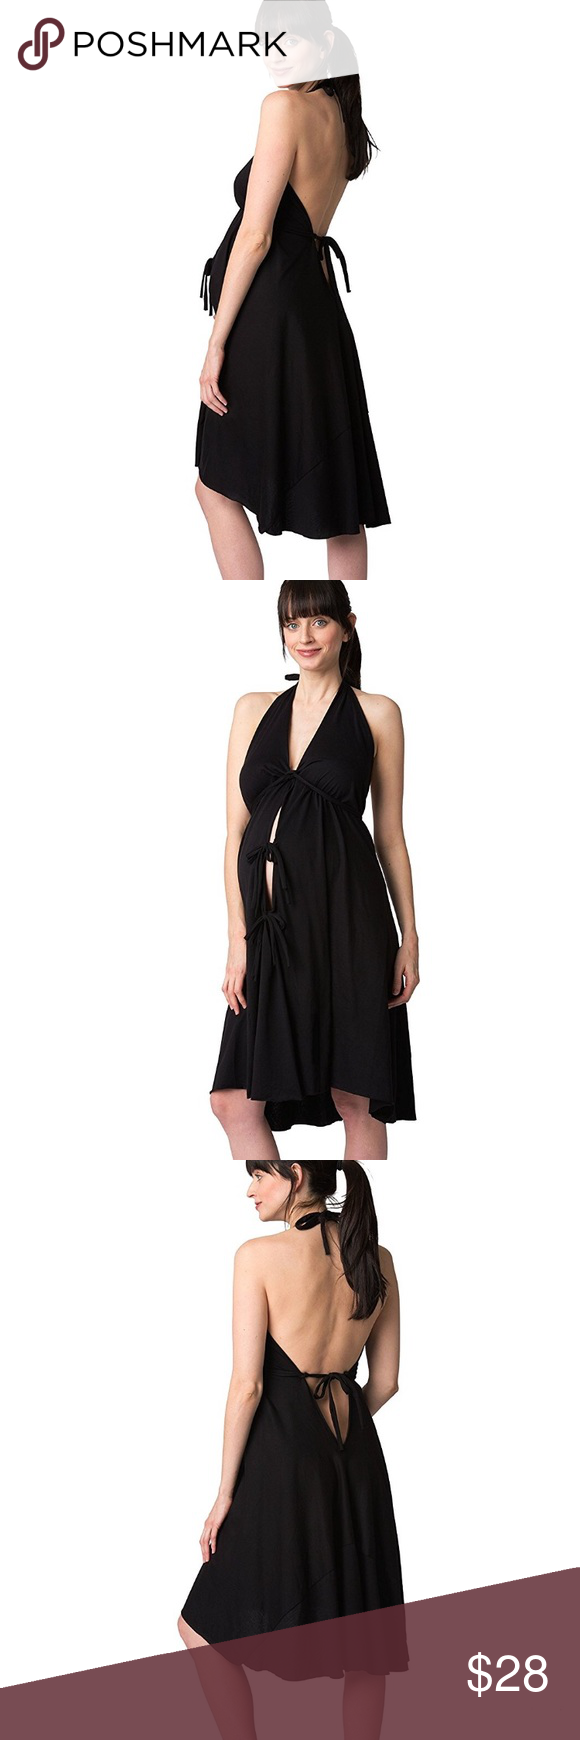 Pretty pushers original labor & delivery gown nwt | Pinterest